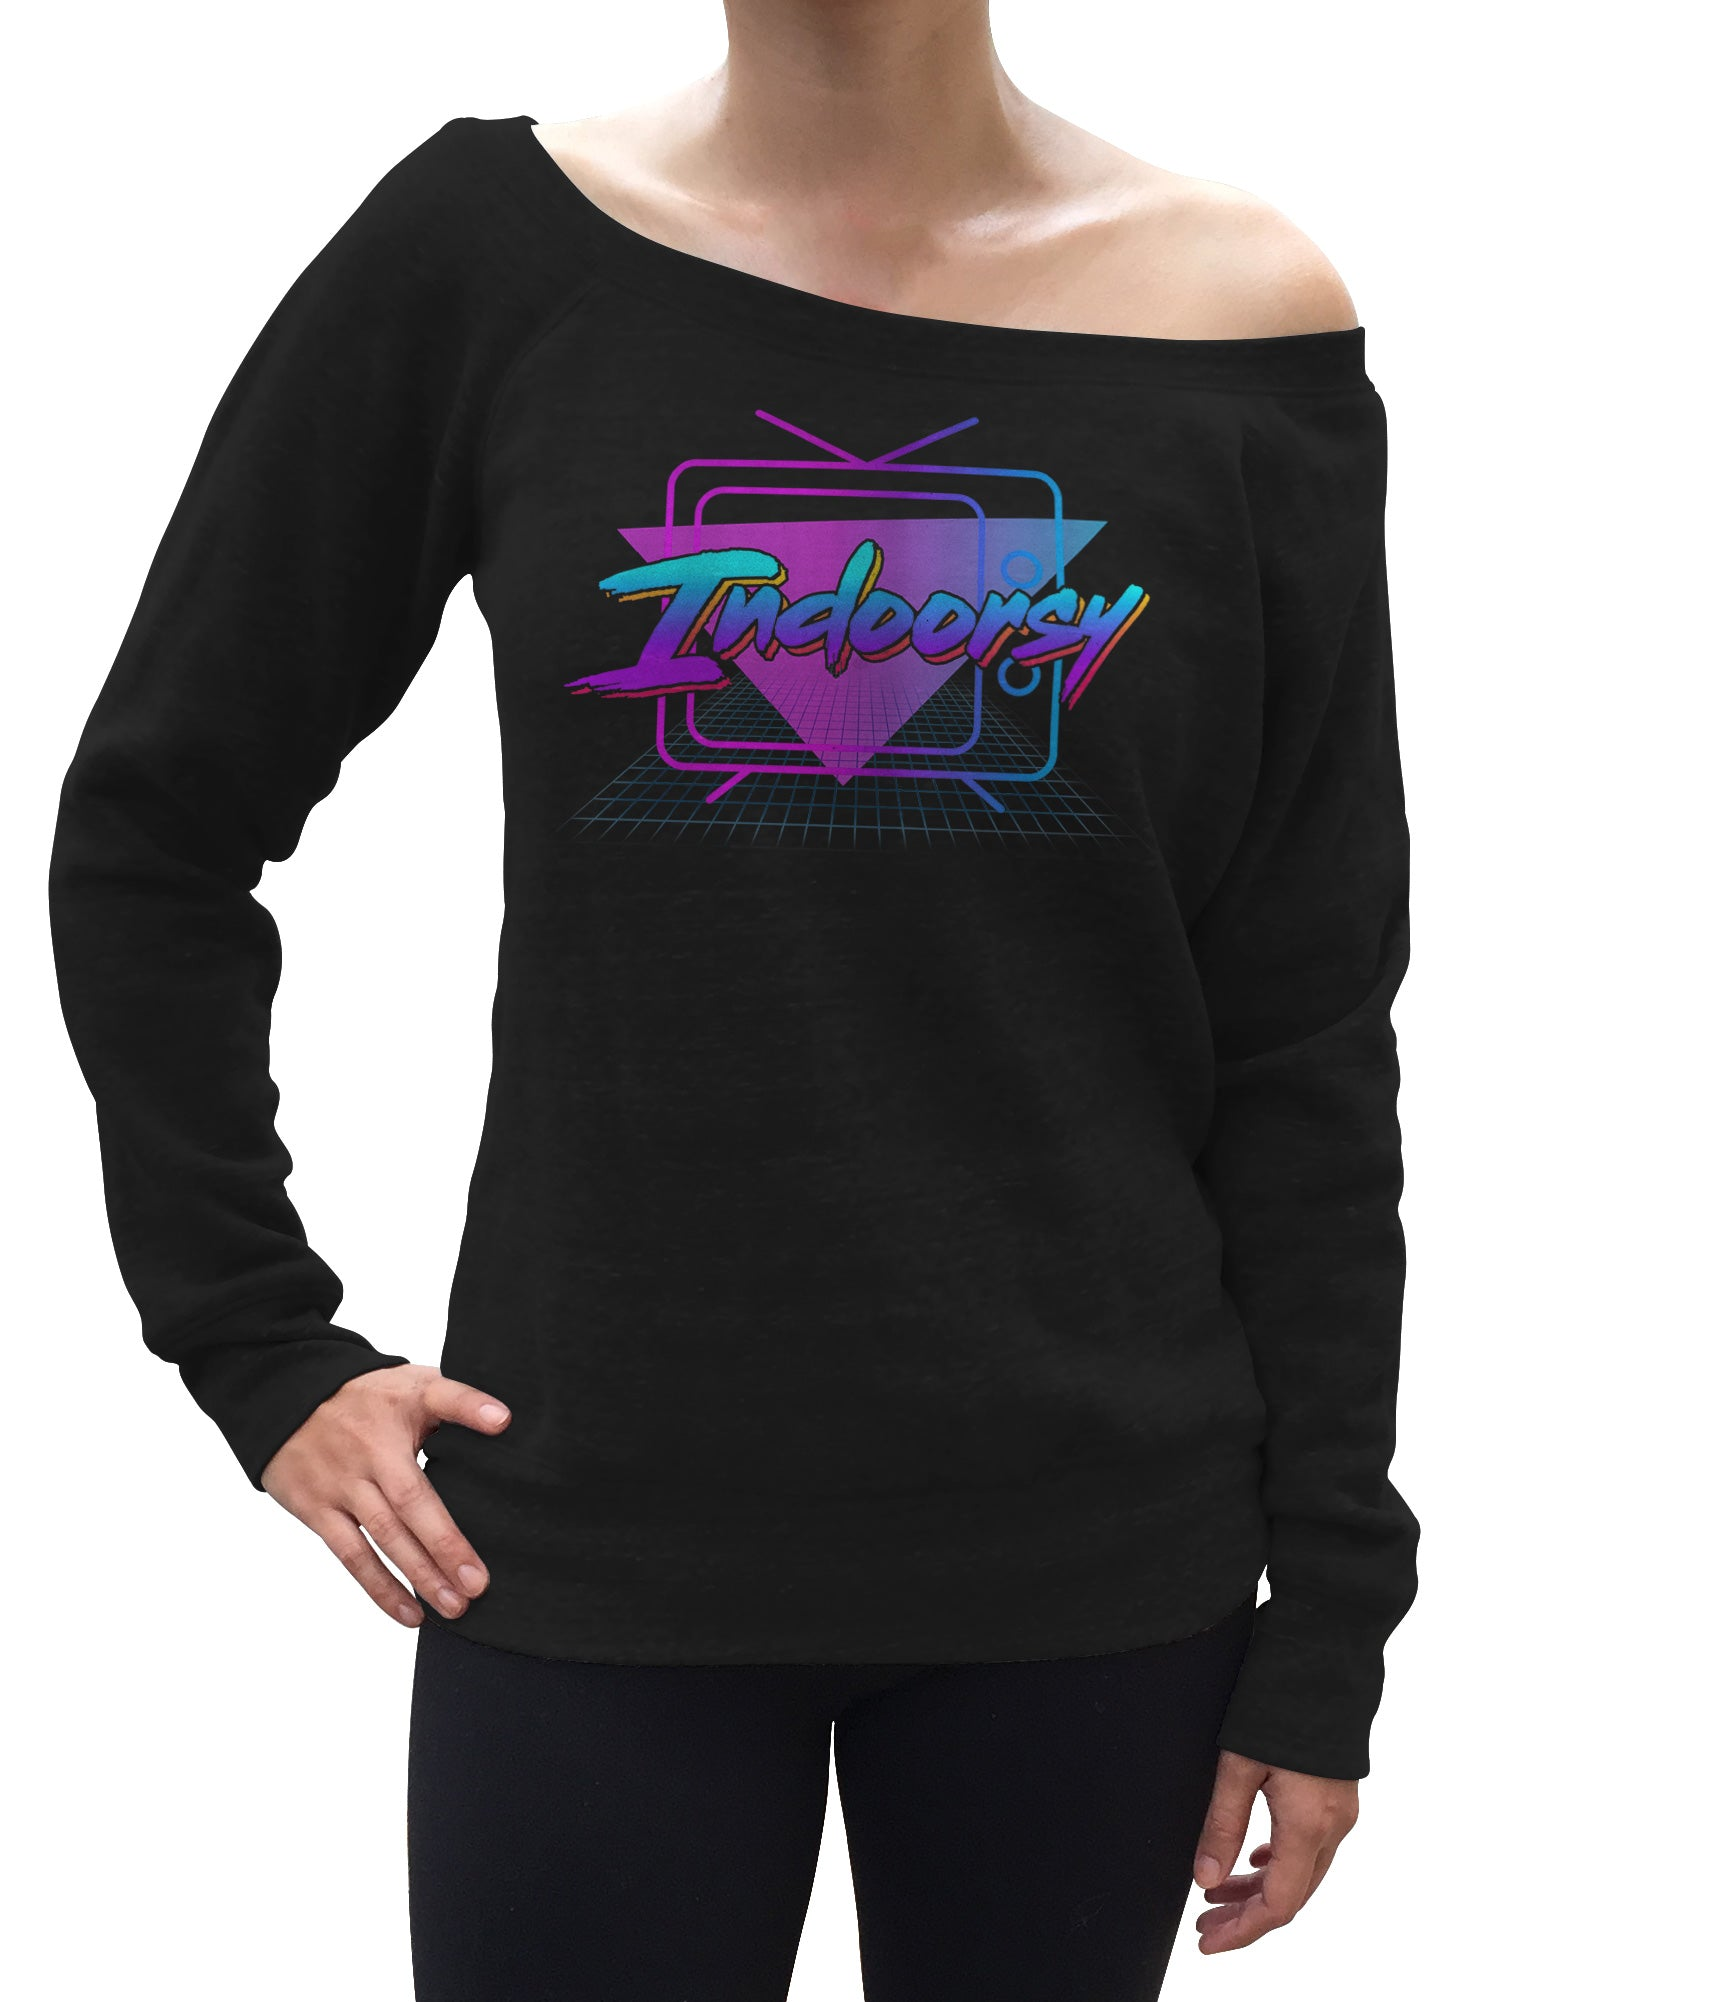 Women's Indoorsy Scoop Neck Fleece